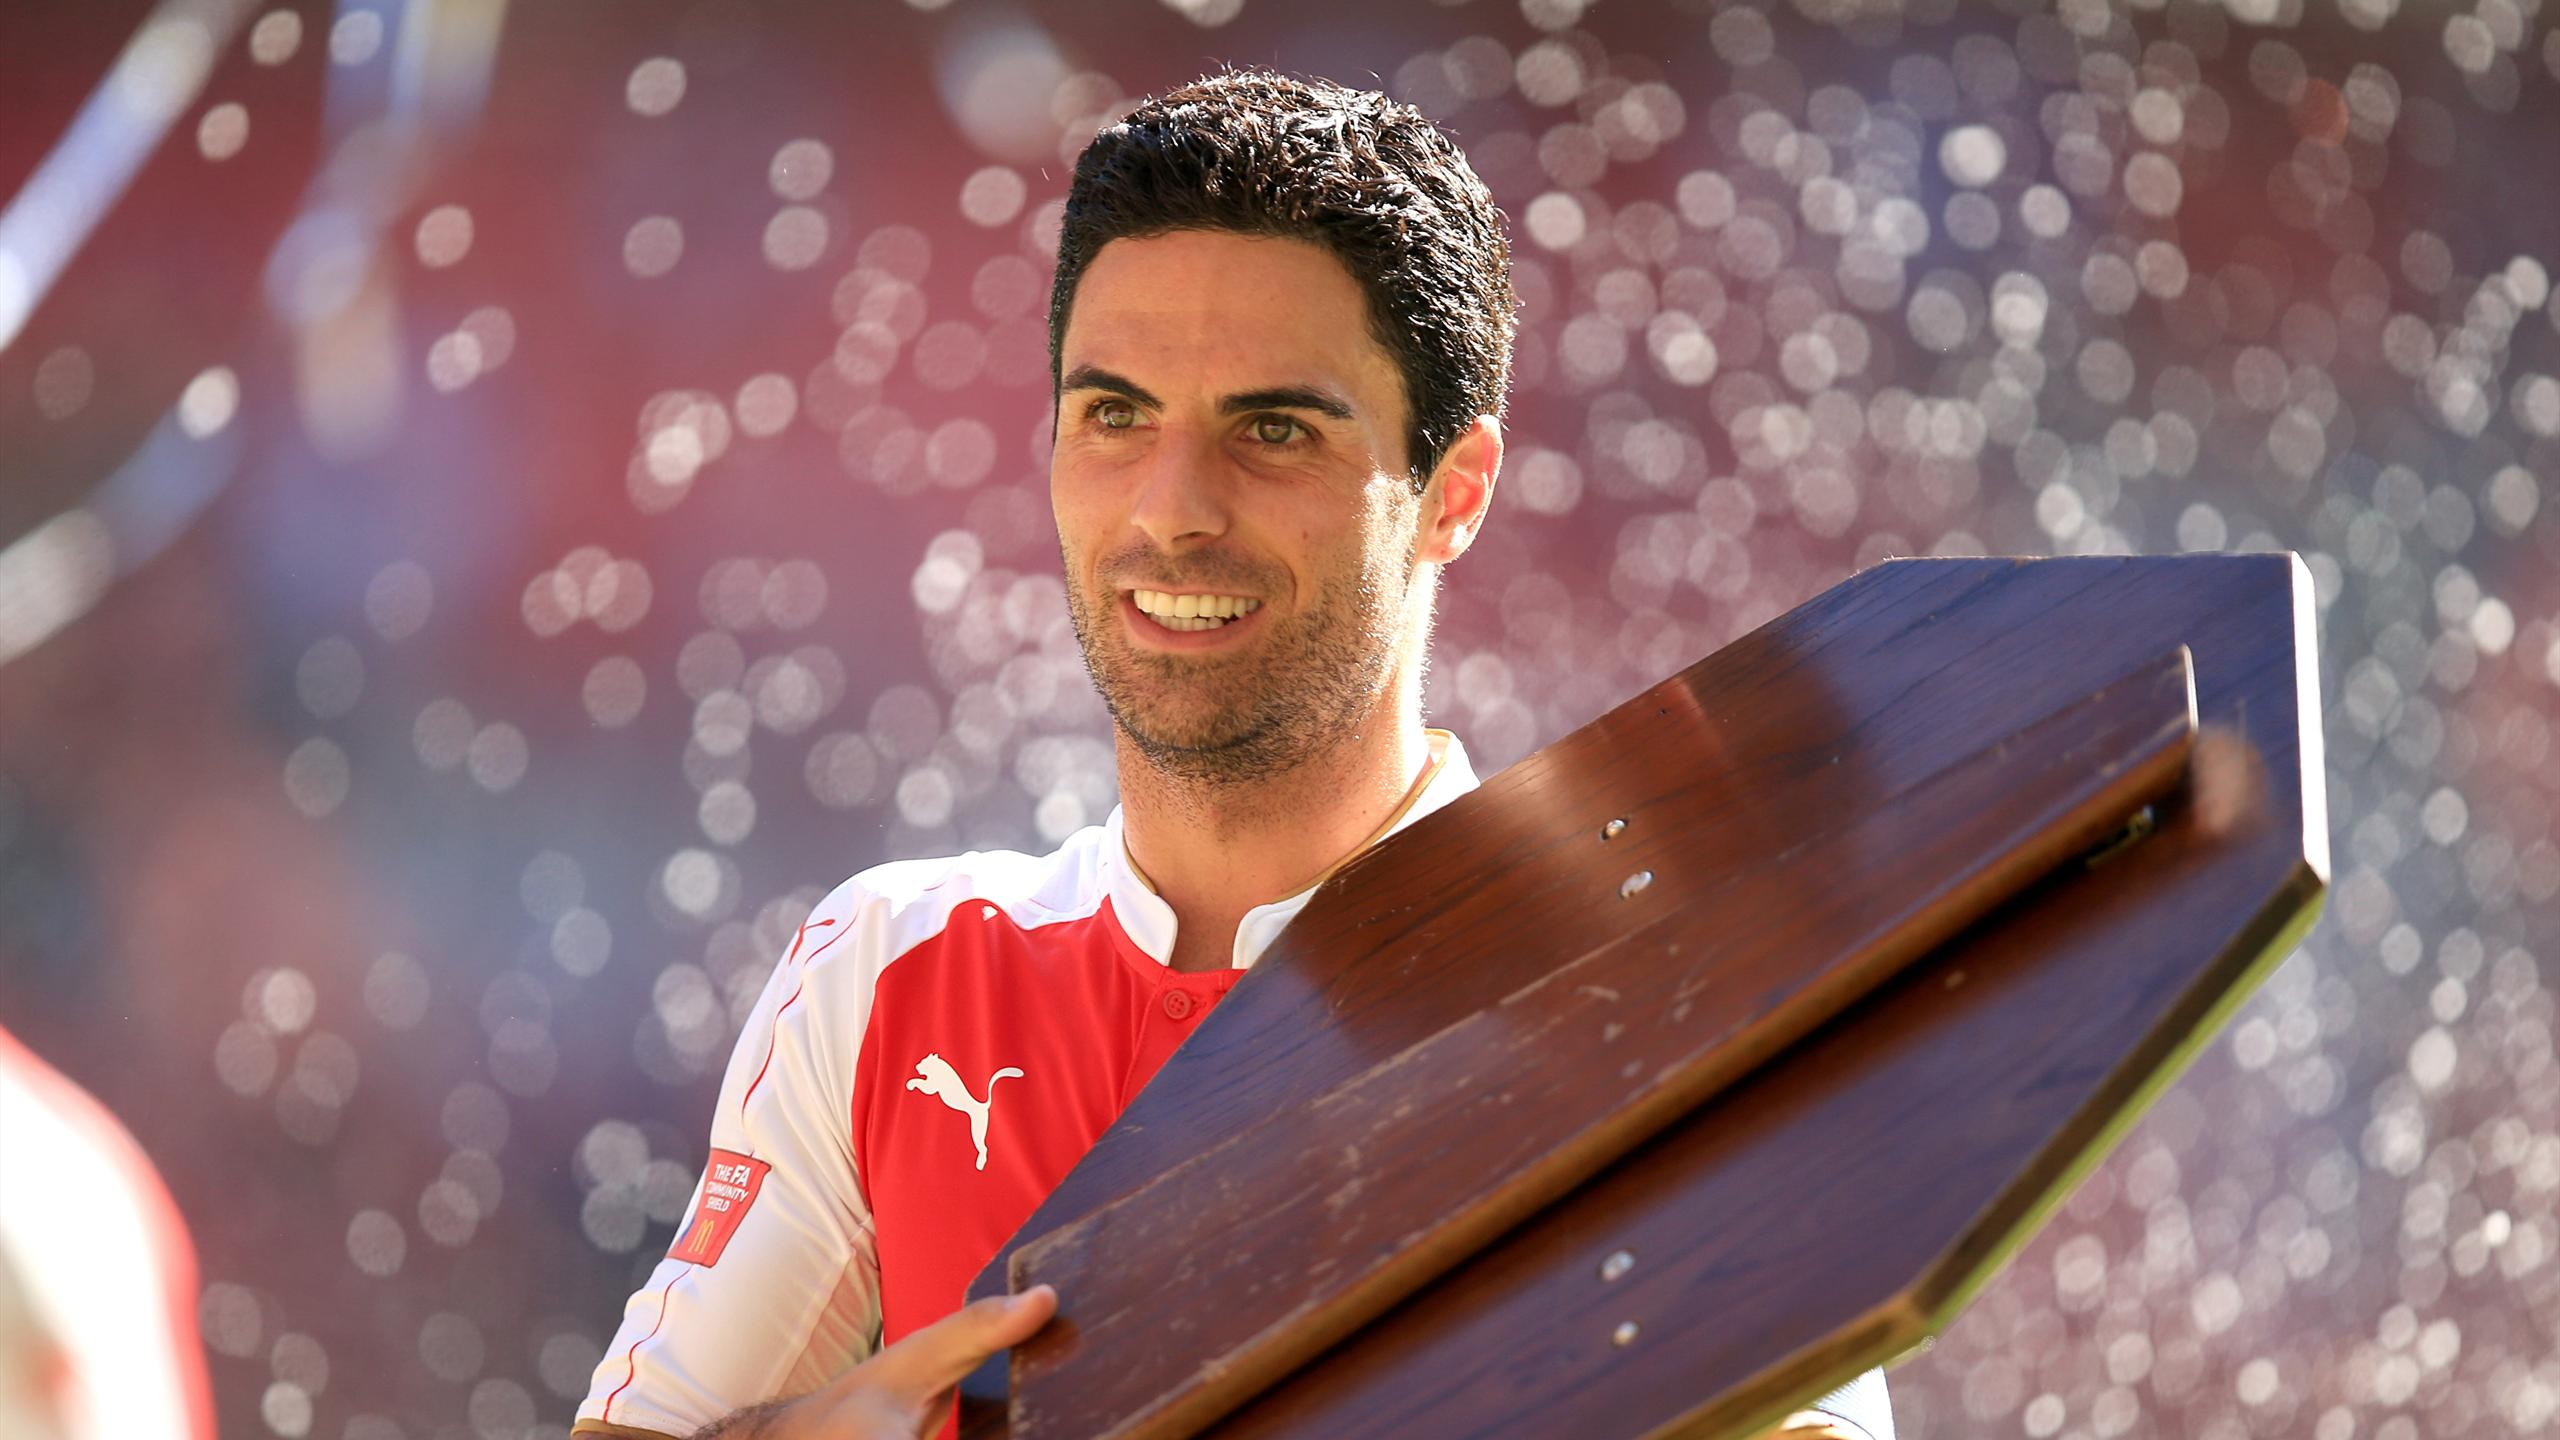 Arsenal's Mikel Arteta celebrates with the Community Shield after the game